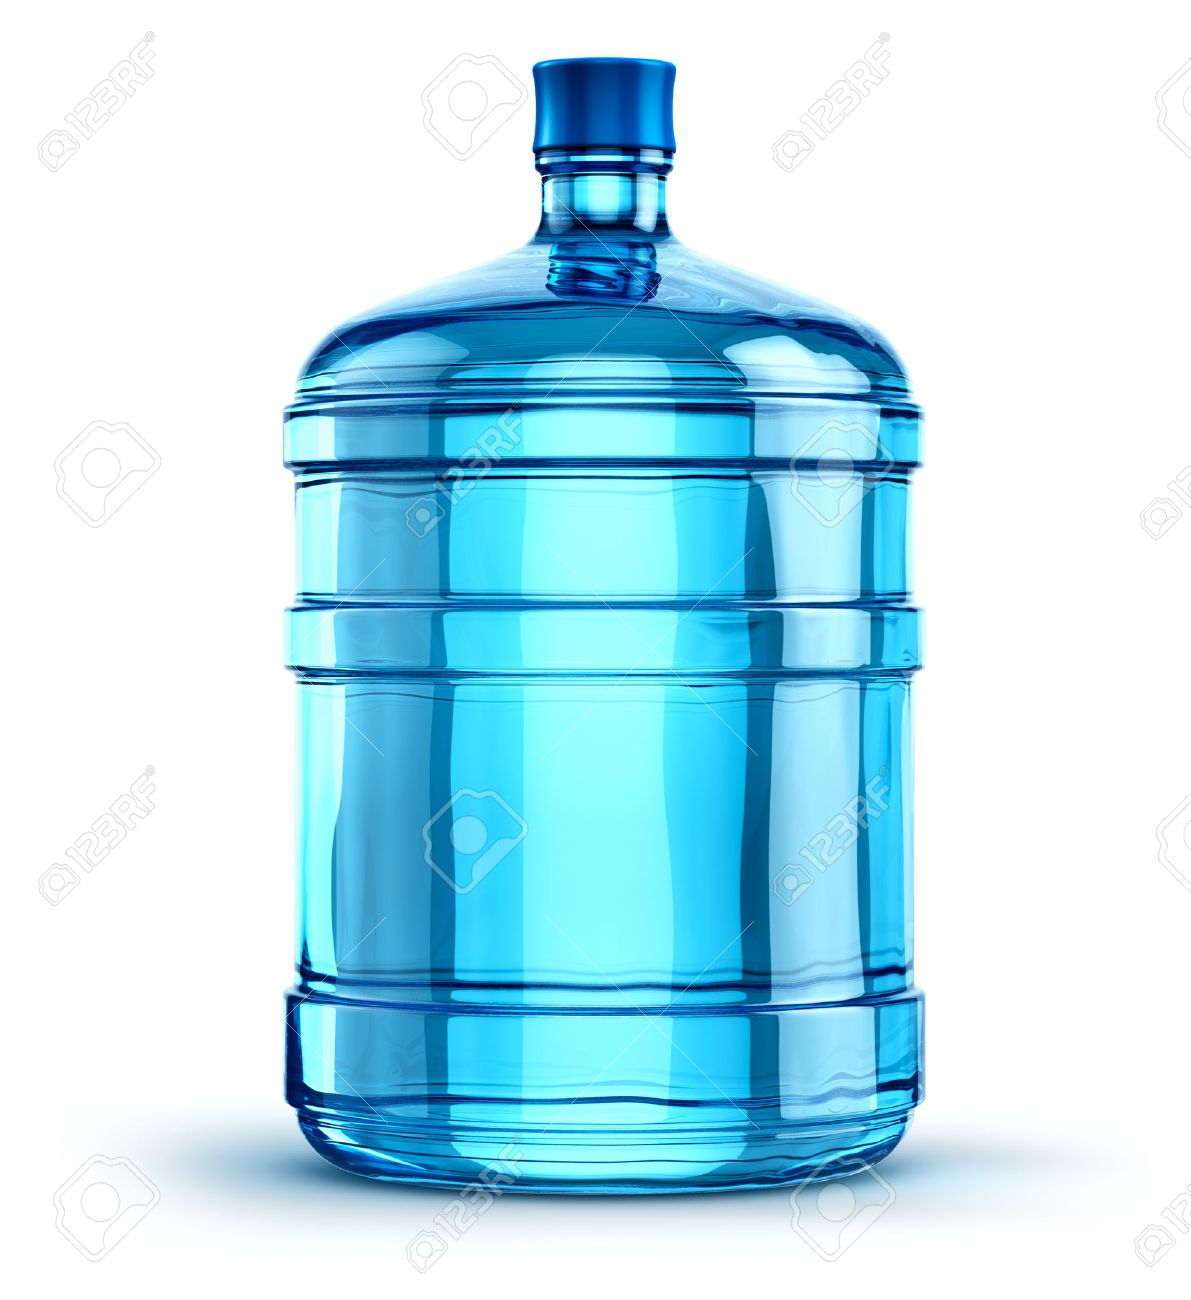 31,689 Water Bottle Stock Vector Illustration And Royalty Free ...